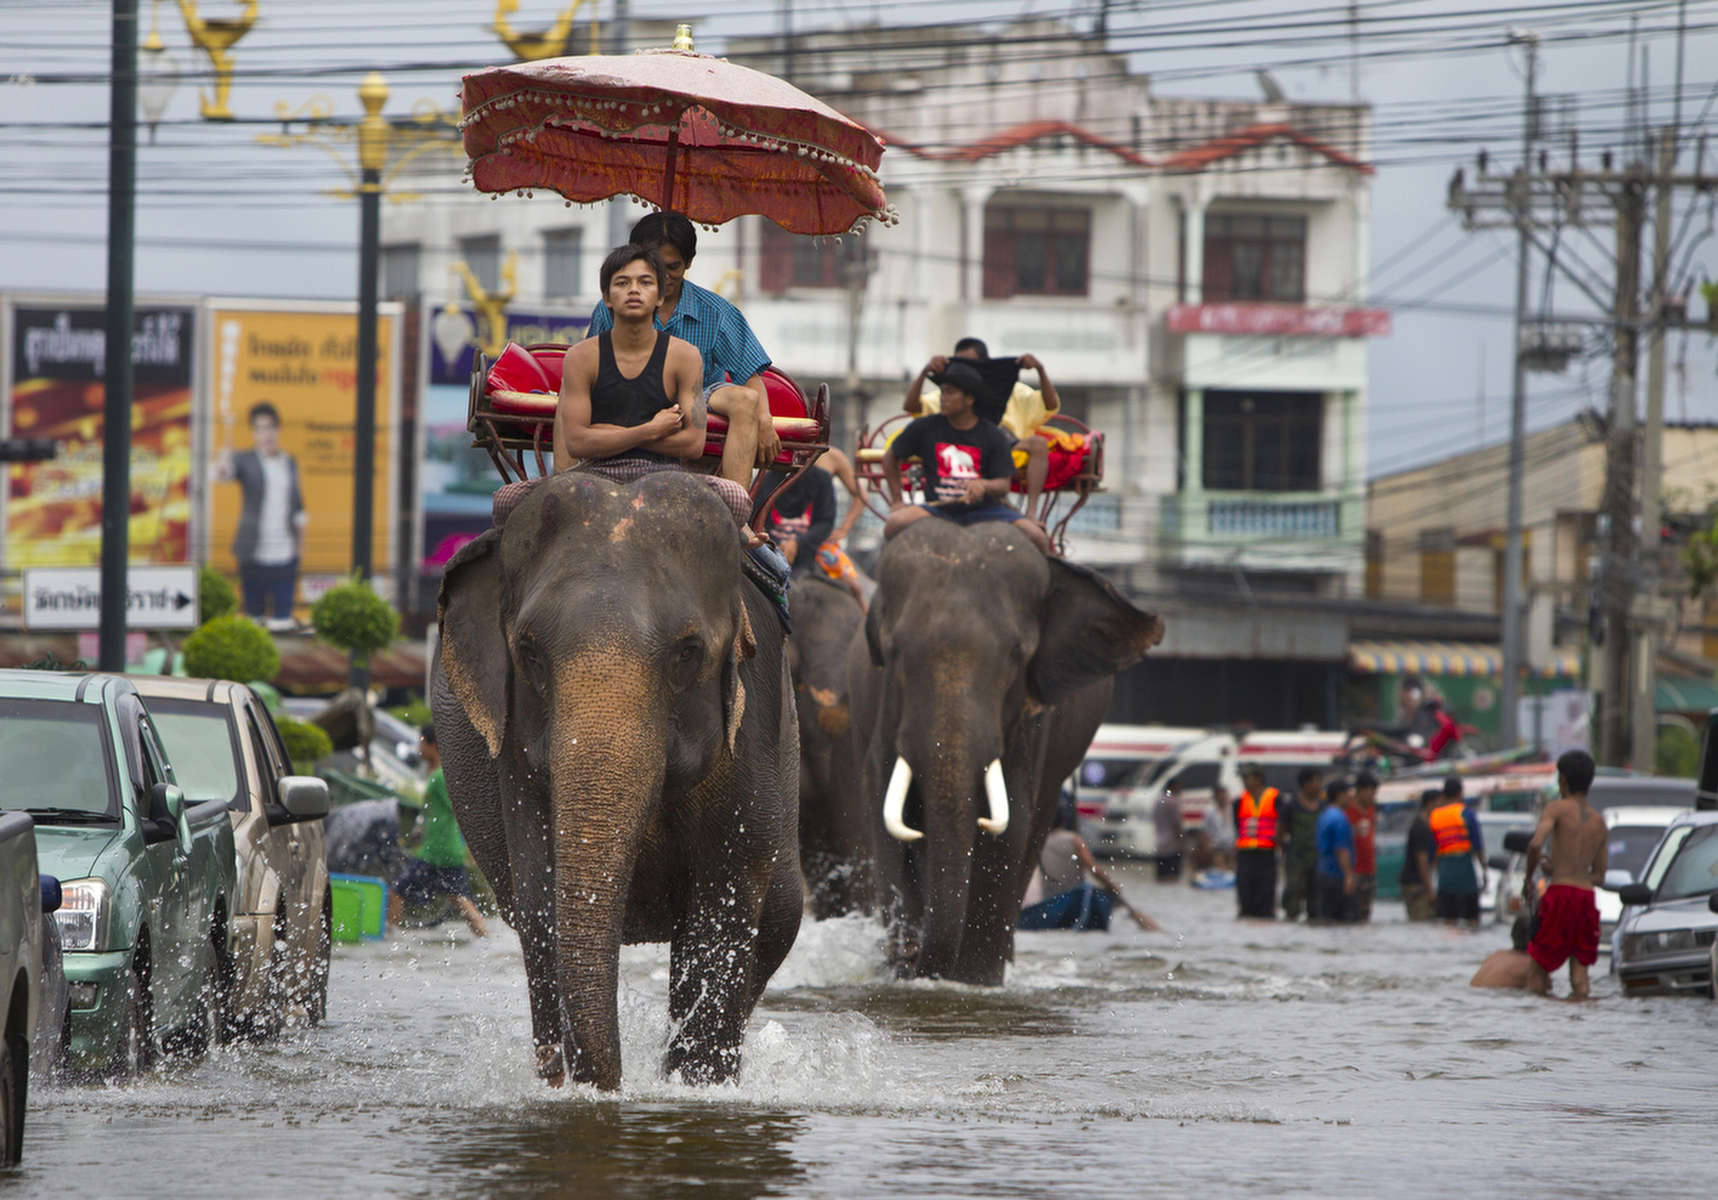 AYUTTHAYA,THAILAND - OCTOBER 10TH:  Thai mahouts ride their elephants through the flooded streets October 10, 2011 in Ayutthaya, Thailand. The elephants are from a nearby elephant camp. Around 200 factories closed in the central Thai province of Ayutthaya because of flooding, which is posing a threat to Bangkok as well. Over 260 people have died in flood-related incidents since late July according to the Department of Disaster Prevention and Mitigation. Some areas of the country are experiencing the worst flooding in 50 years, mainly in the centre, north and northeast.(Photo by Paula Bronstein /Getty Images)